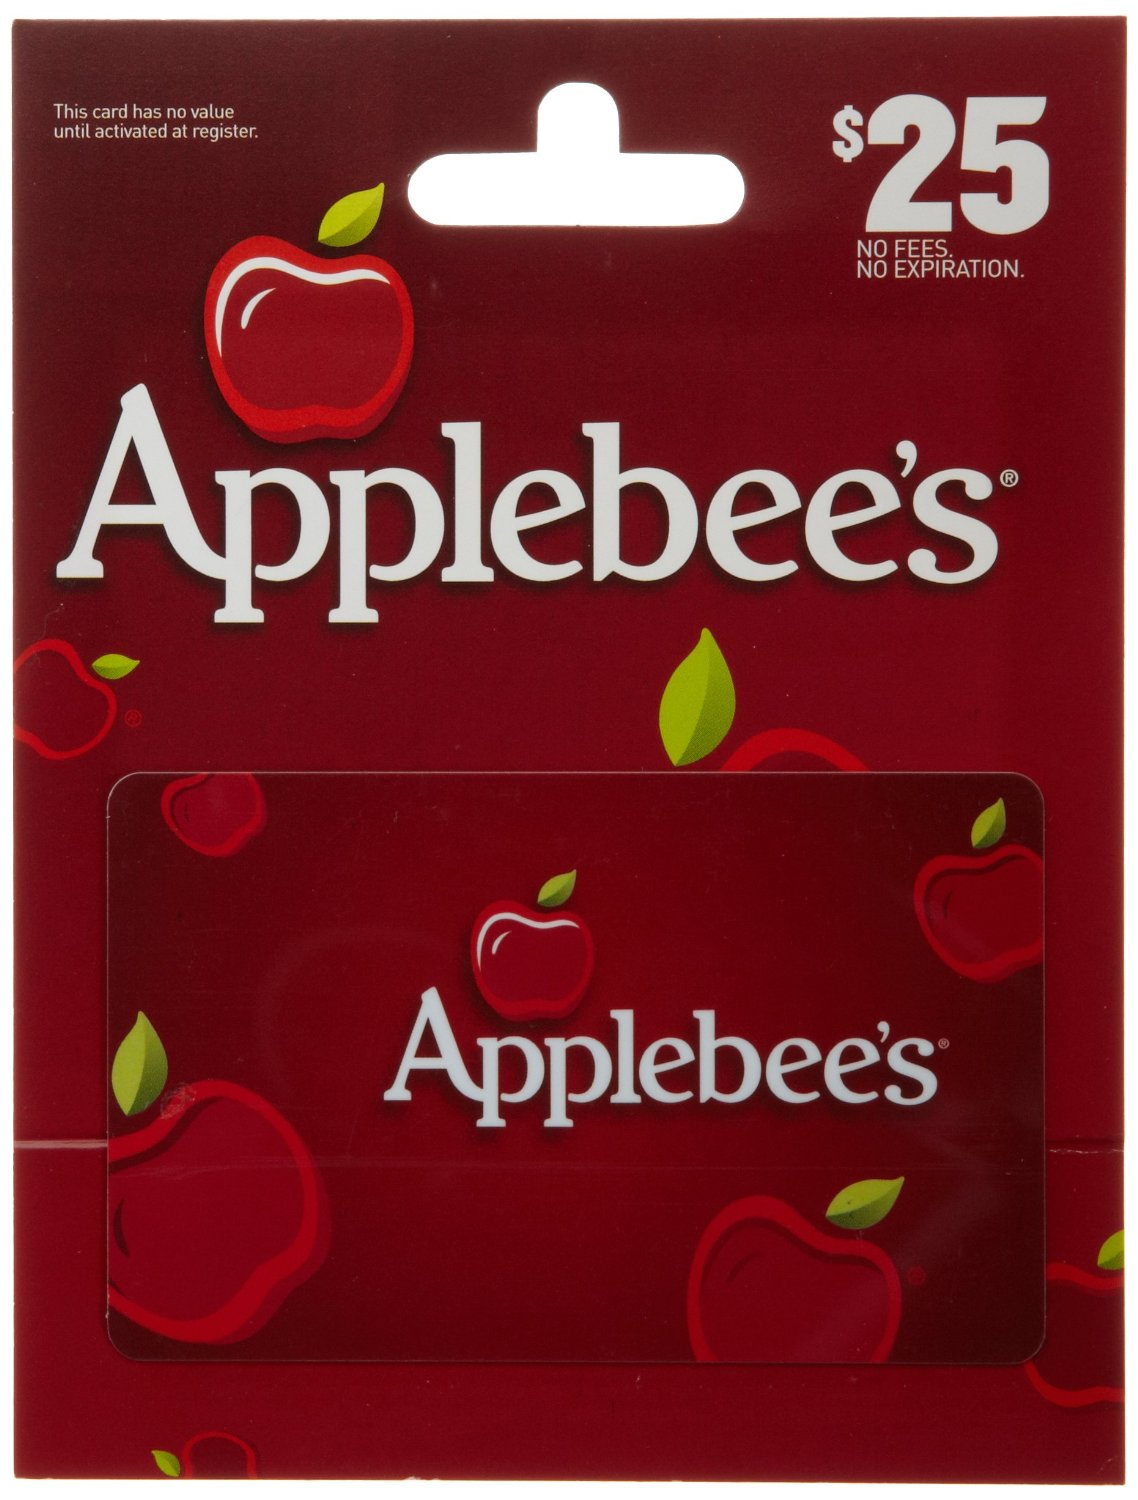 Enter for a chance to win a $25 Applebees Gift Card (ends Nov 12) #giveaways @s8r8l33